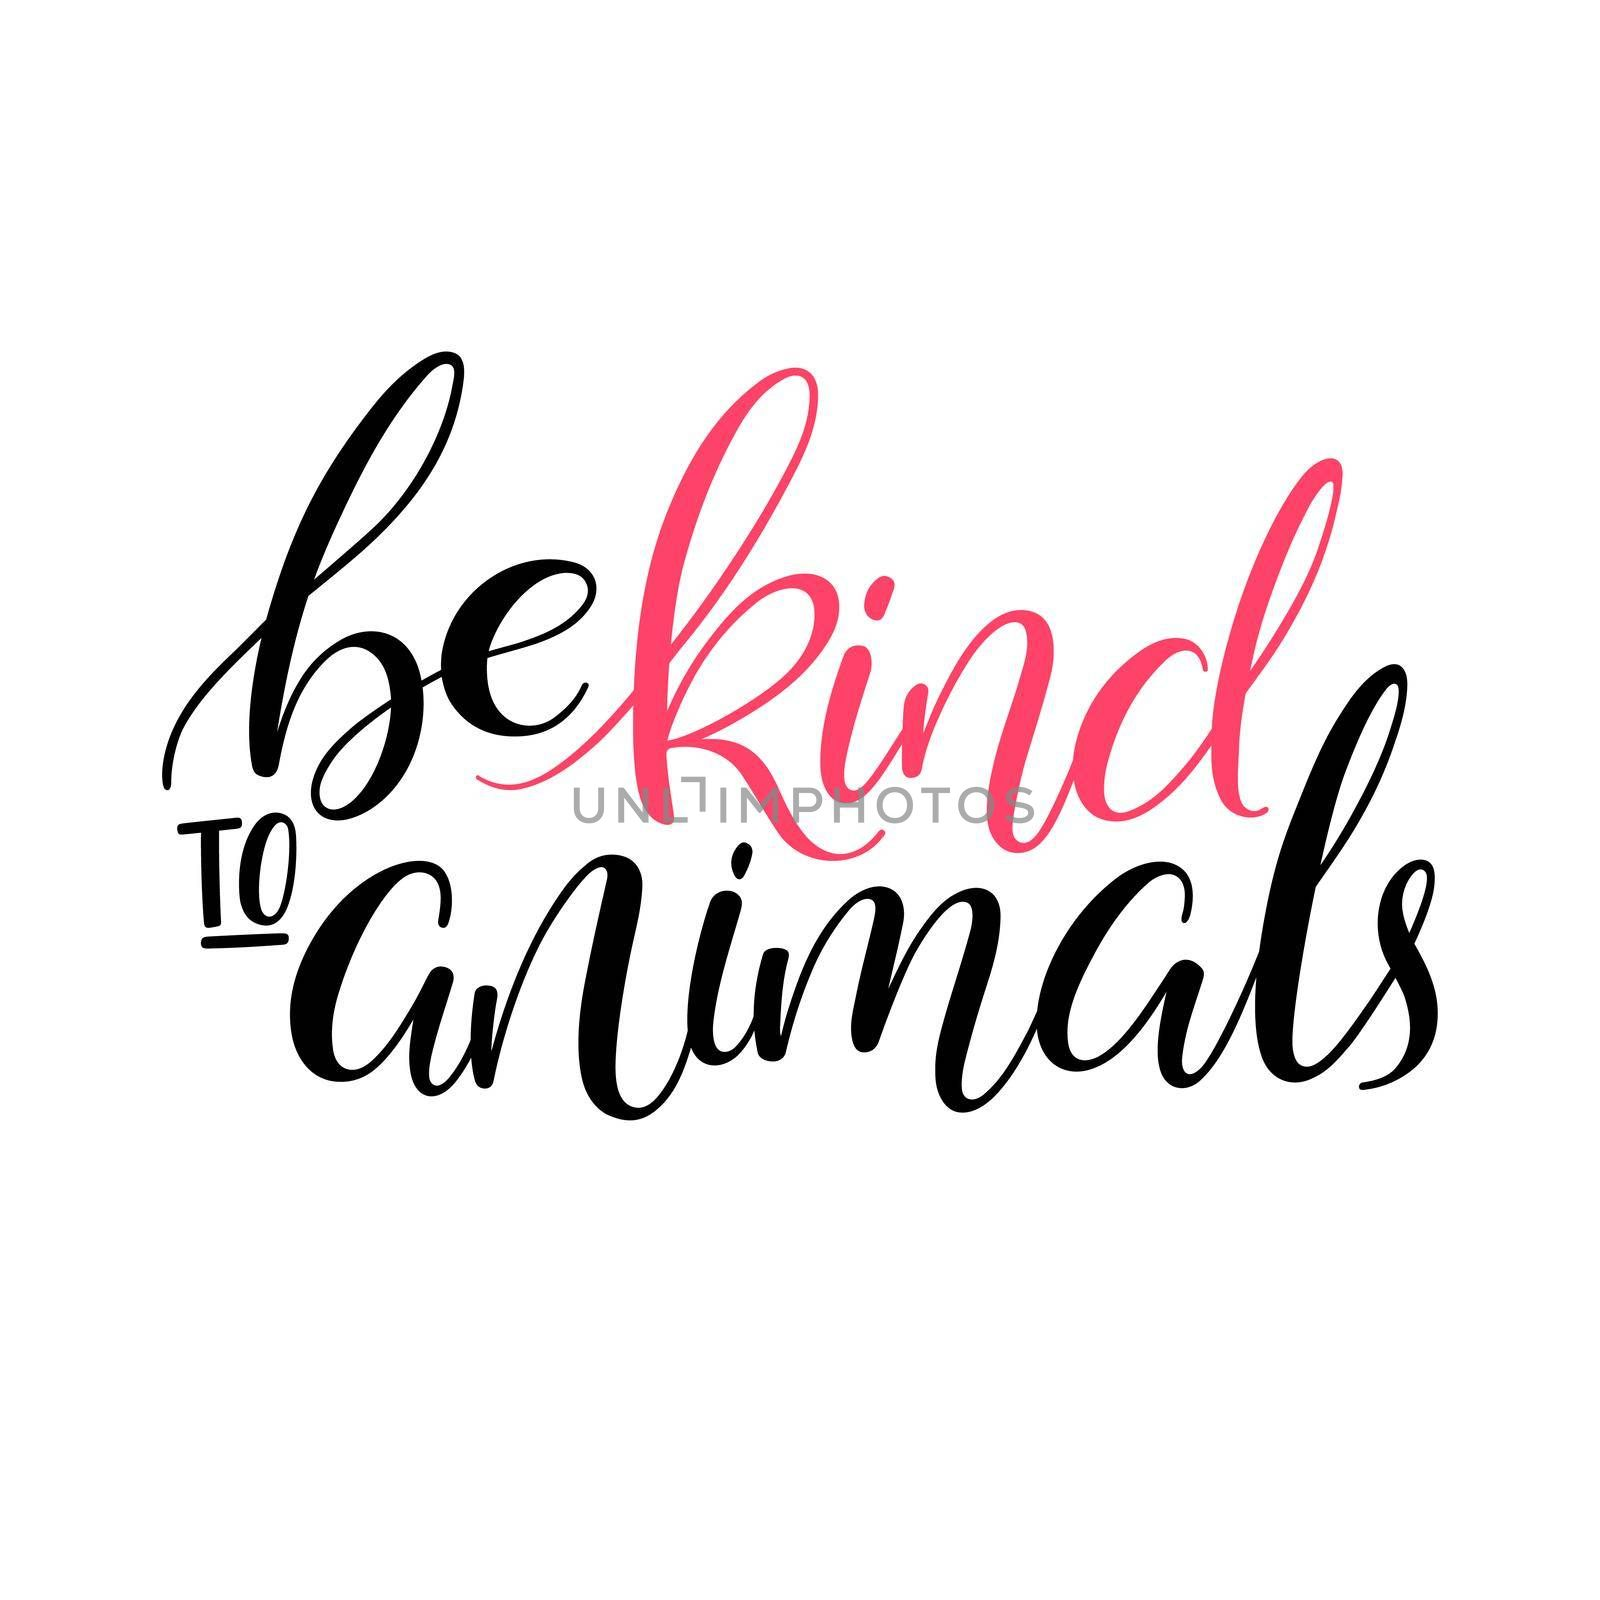 Be kind to animals. handwritten inspirational calligraphy